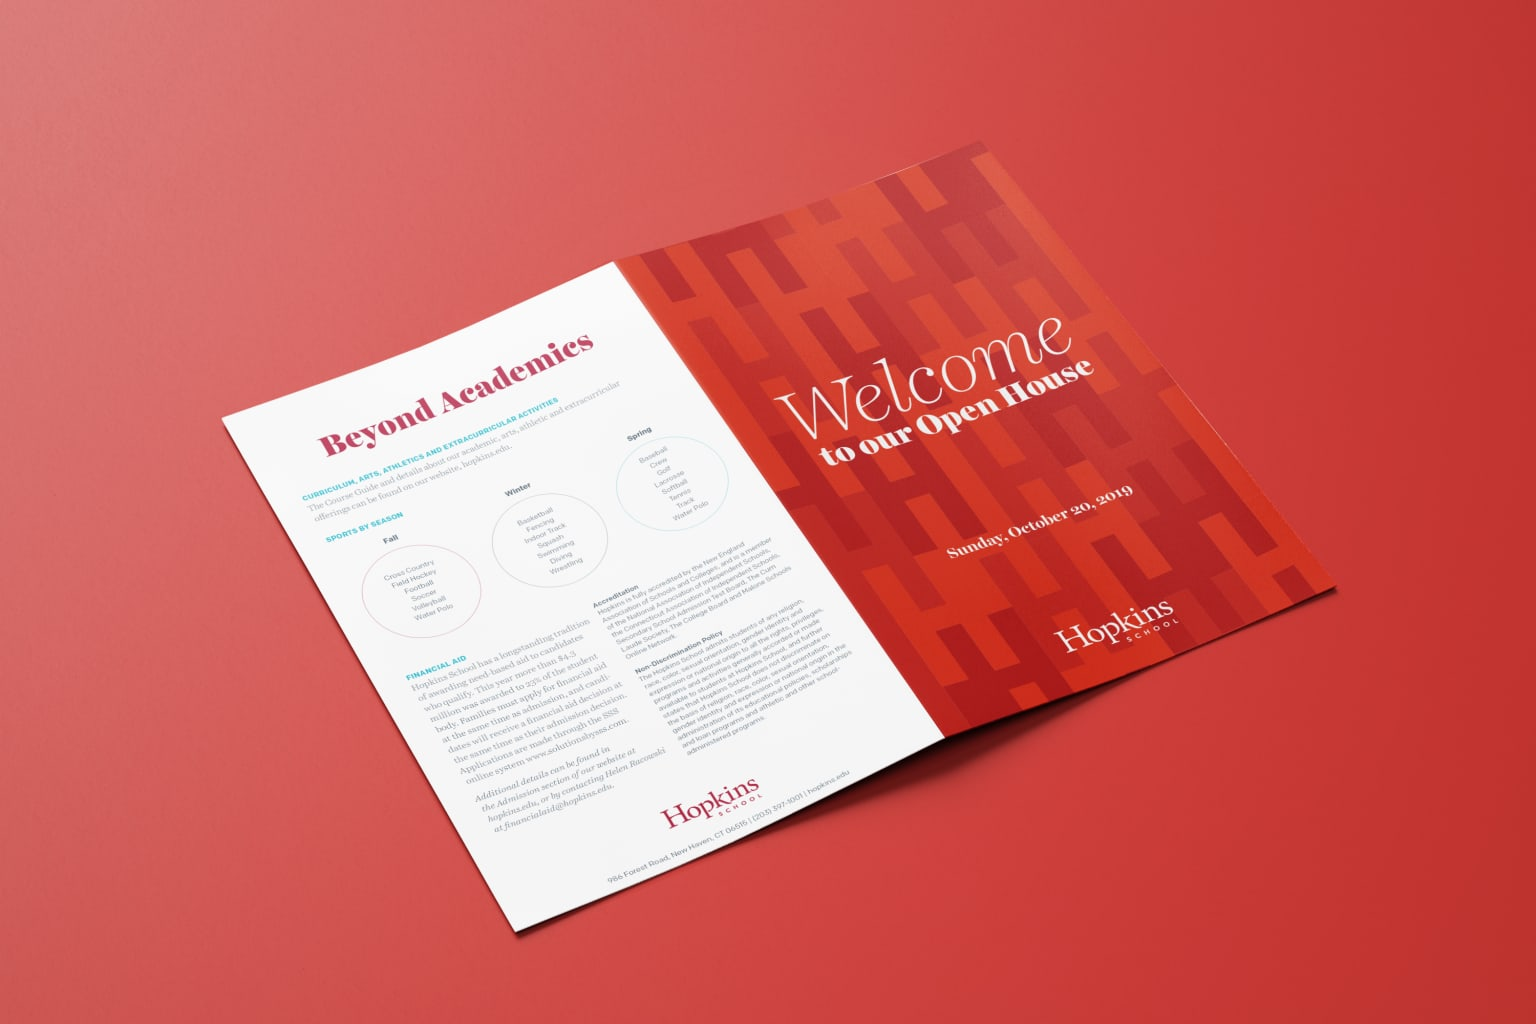 Hopkins School — Open House Collateral